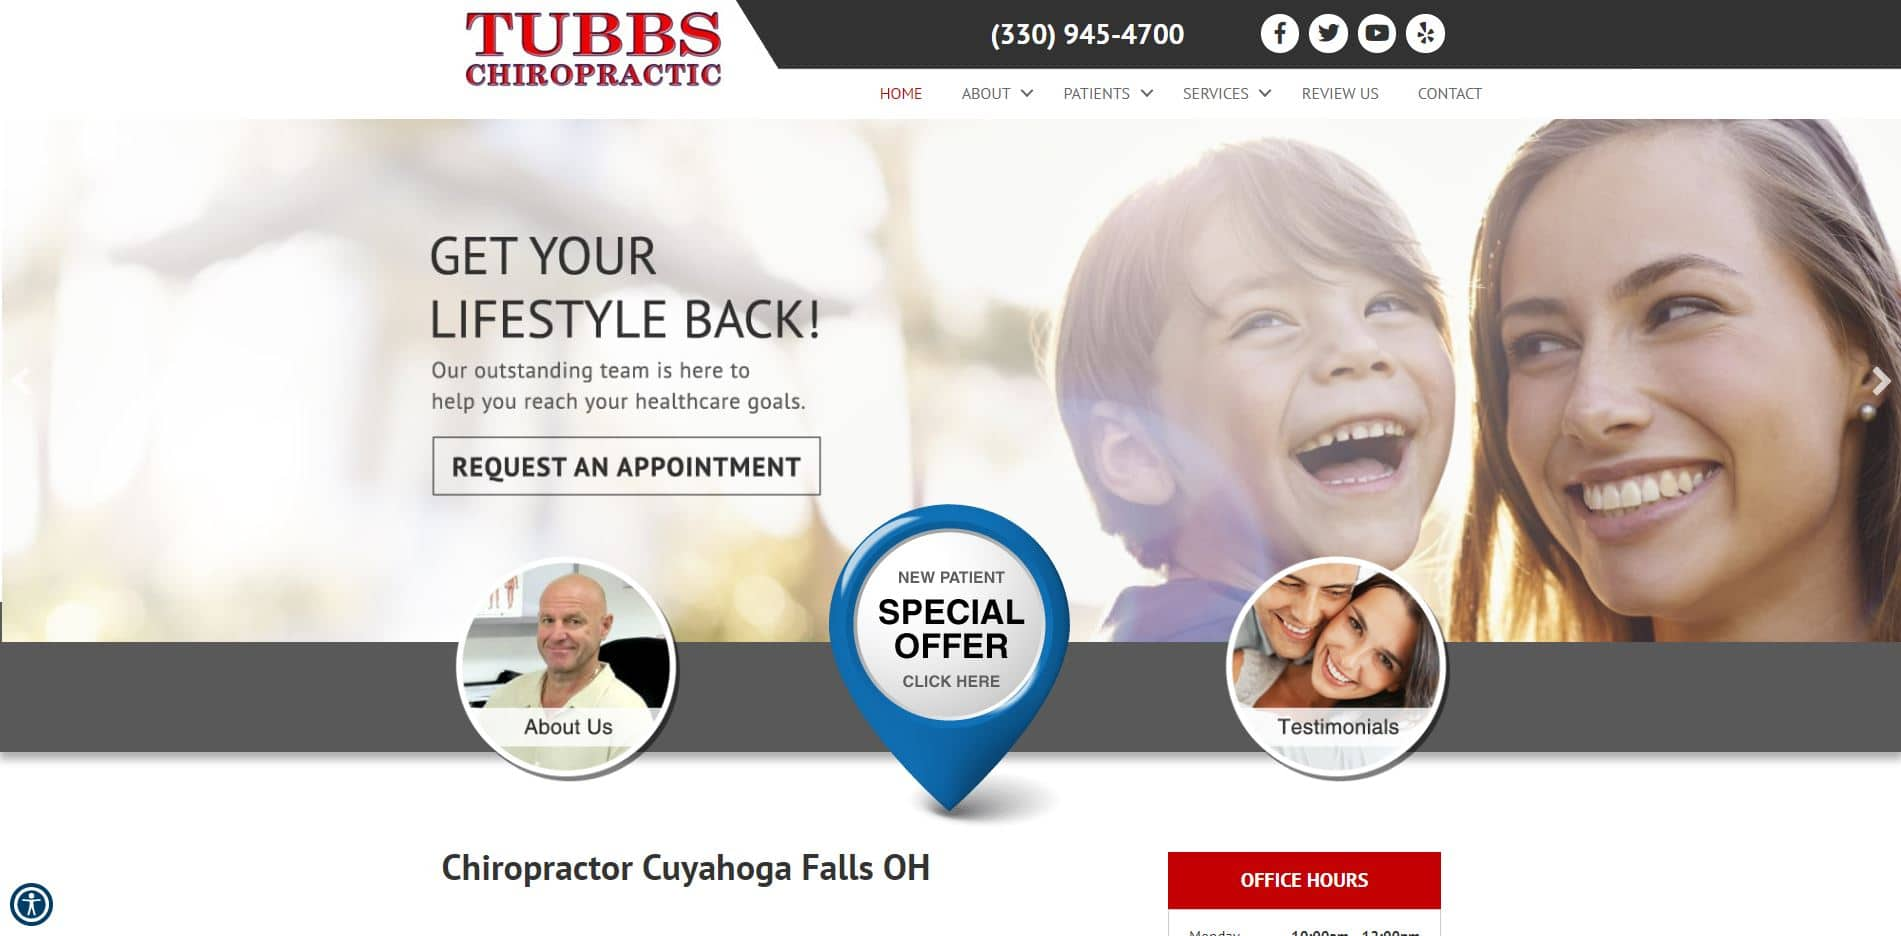 Chiropractor in Cuyahoga